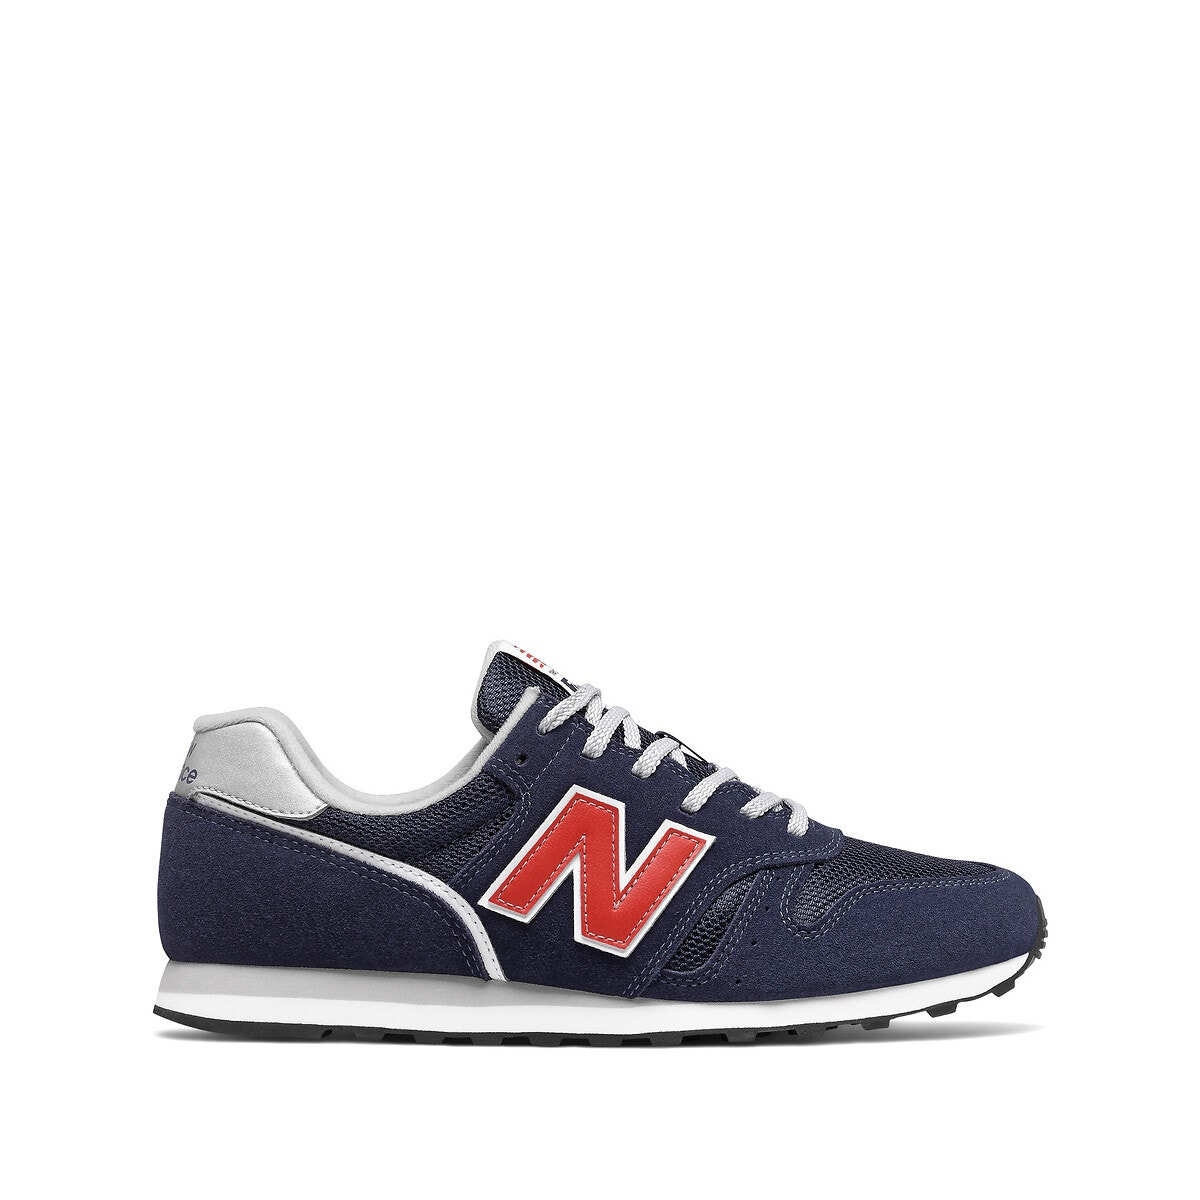 Chaussures homme New Balance   La Redoute